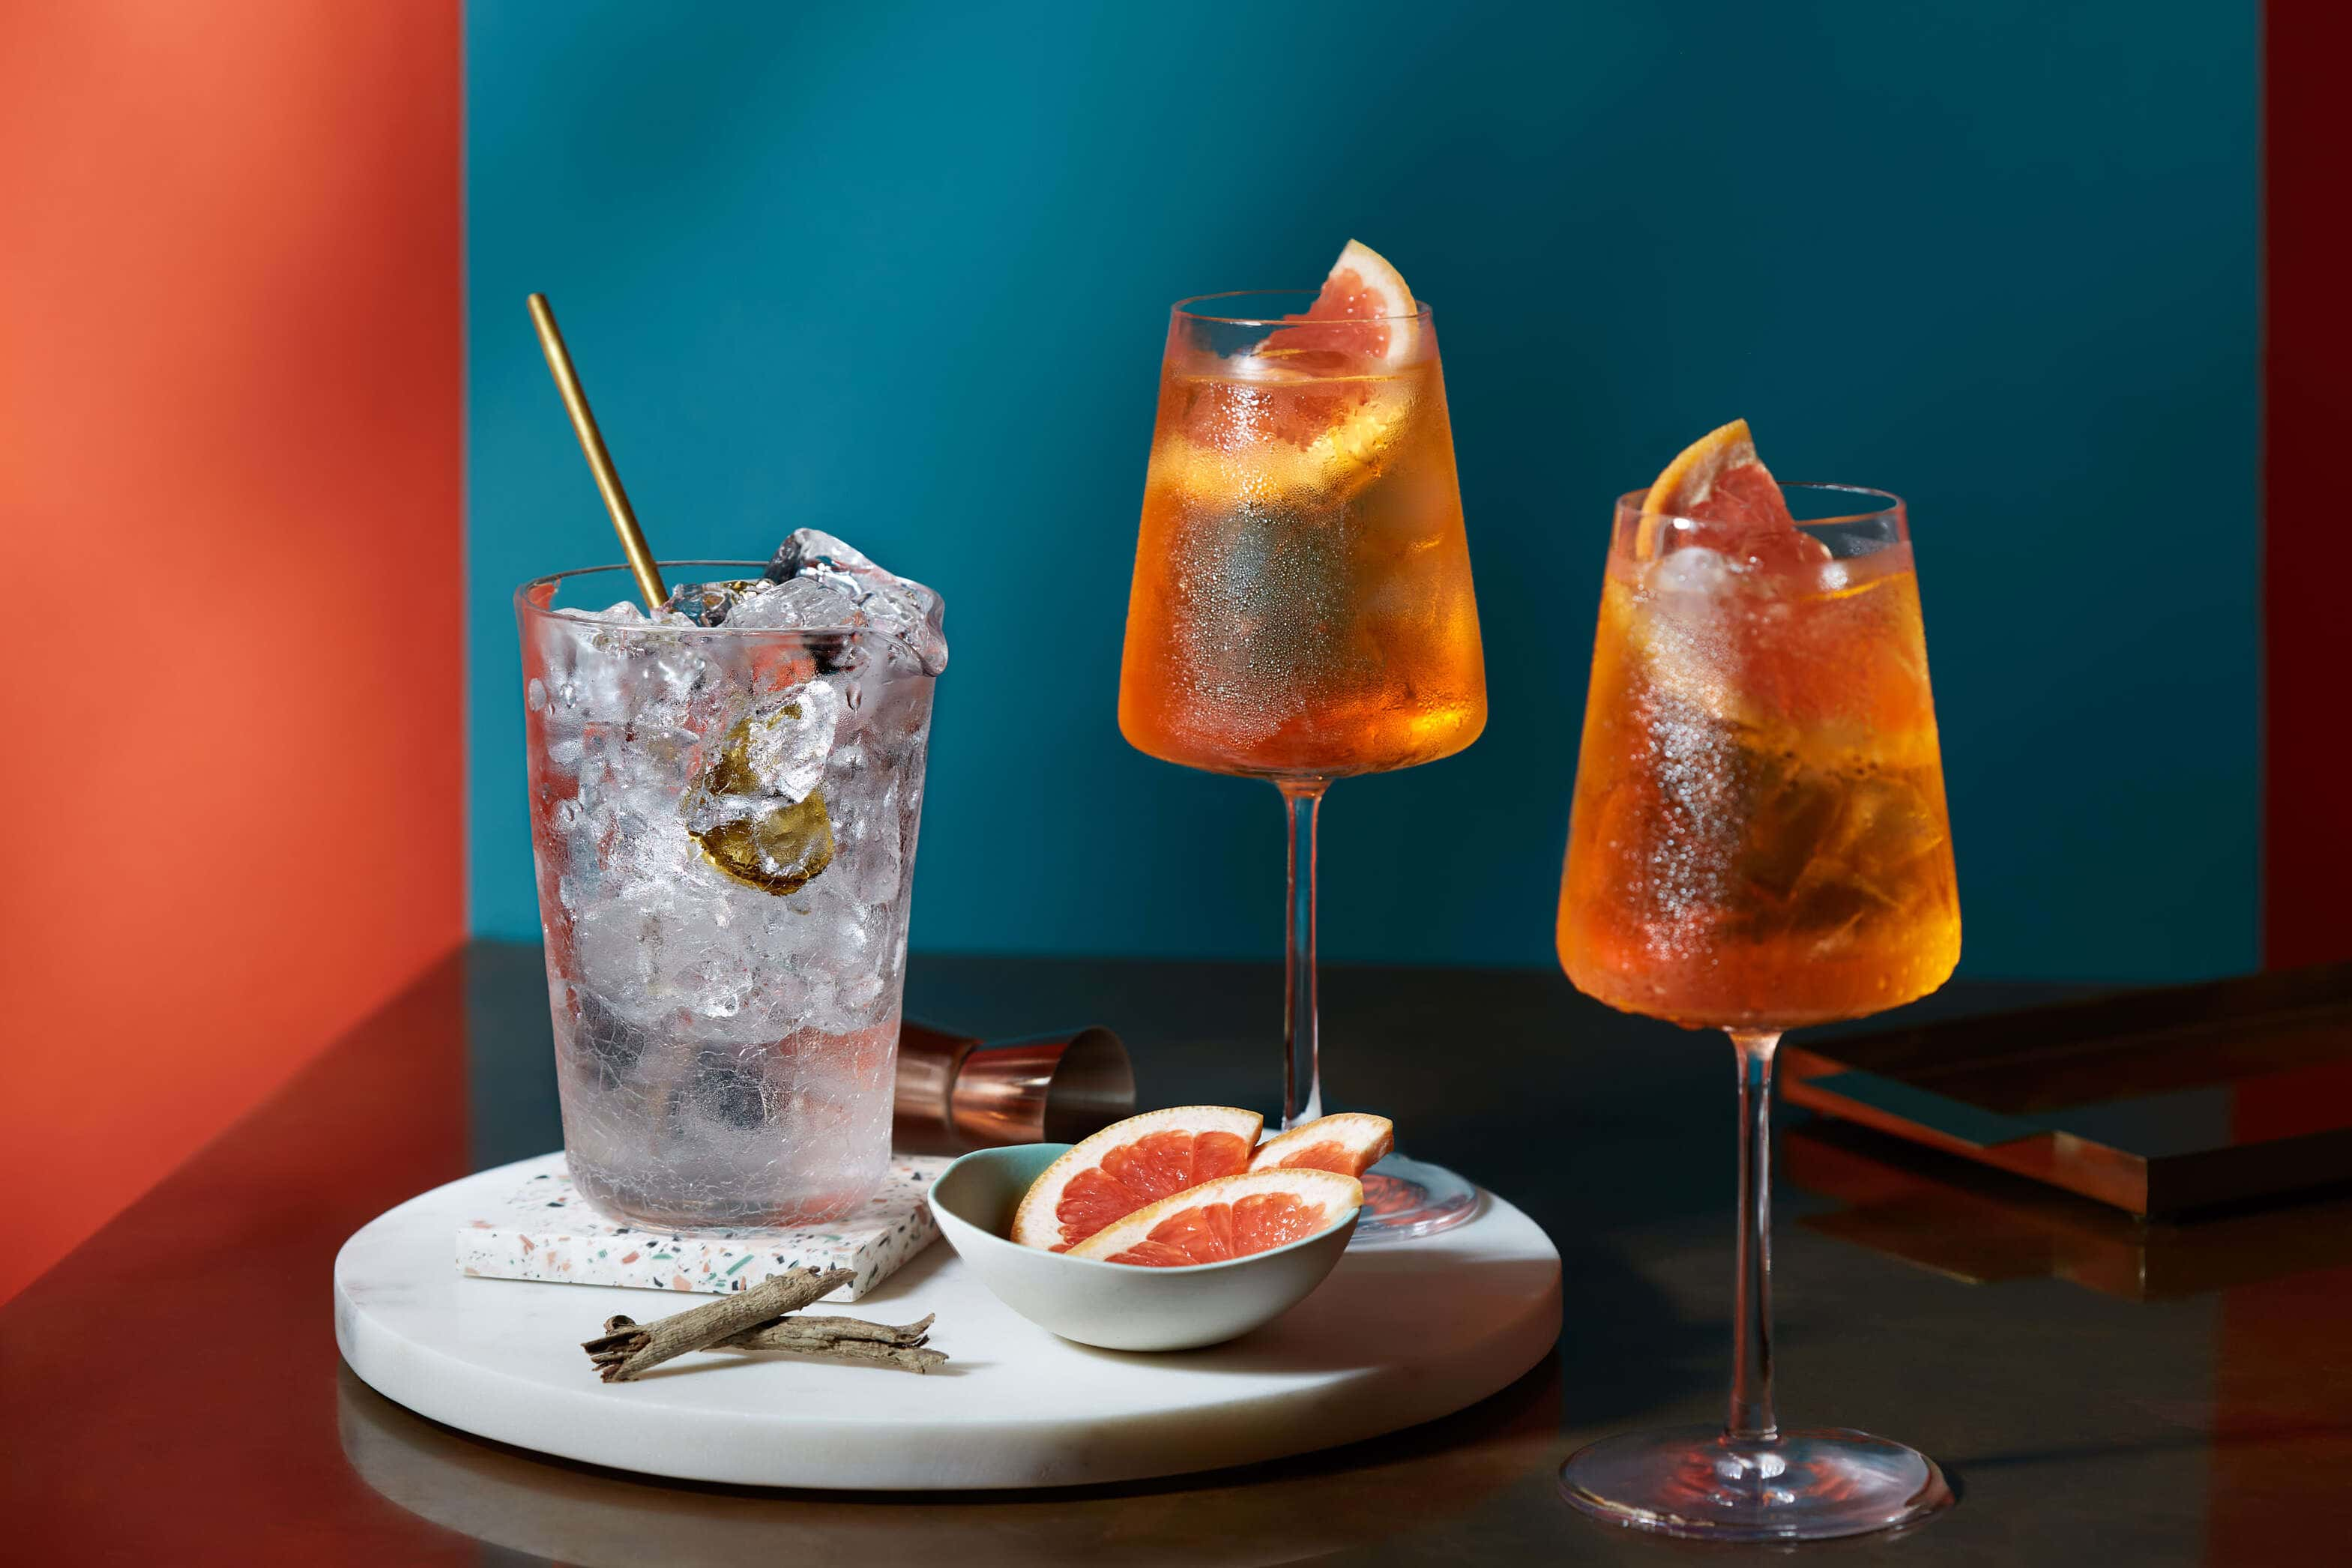 Orange cocktails with ice and garnishes